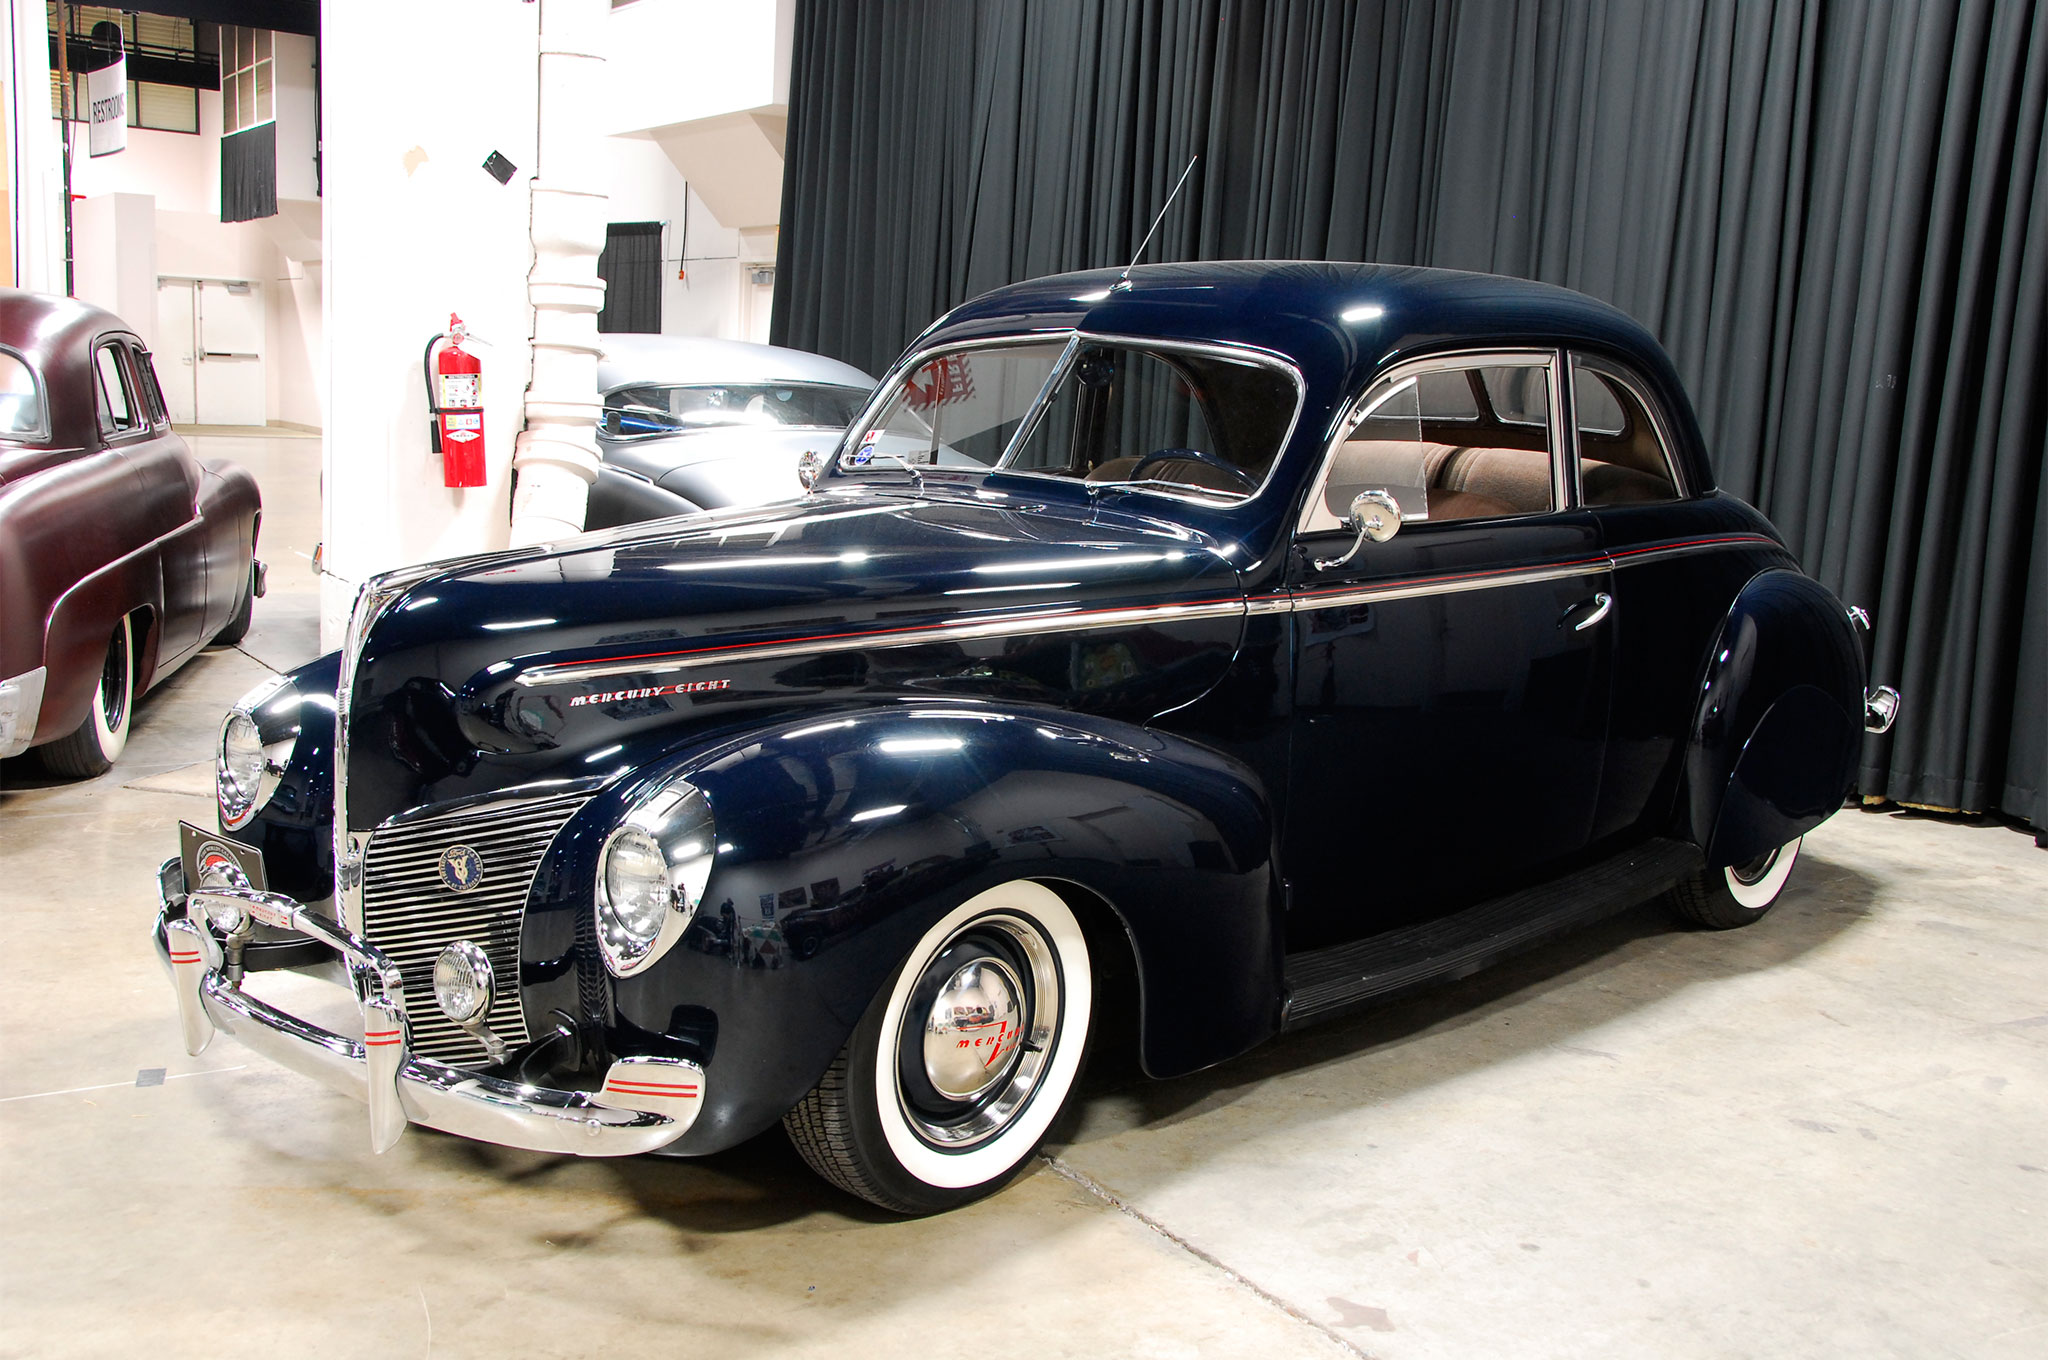 Sometimes all you need to do is set the stance and add just the right amount of detail to your ride to make the scene. This '40 Merc coupe looked right with its deep blue body accented by red pinstriping, perfect plating, and rear skirts.